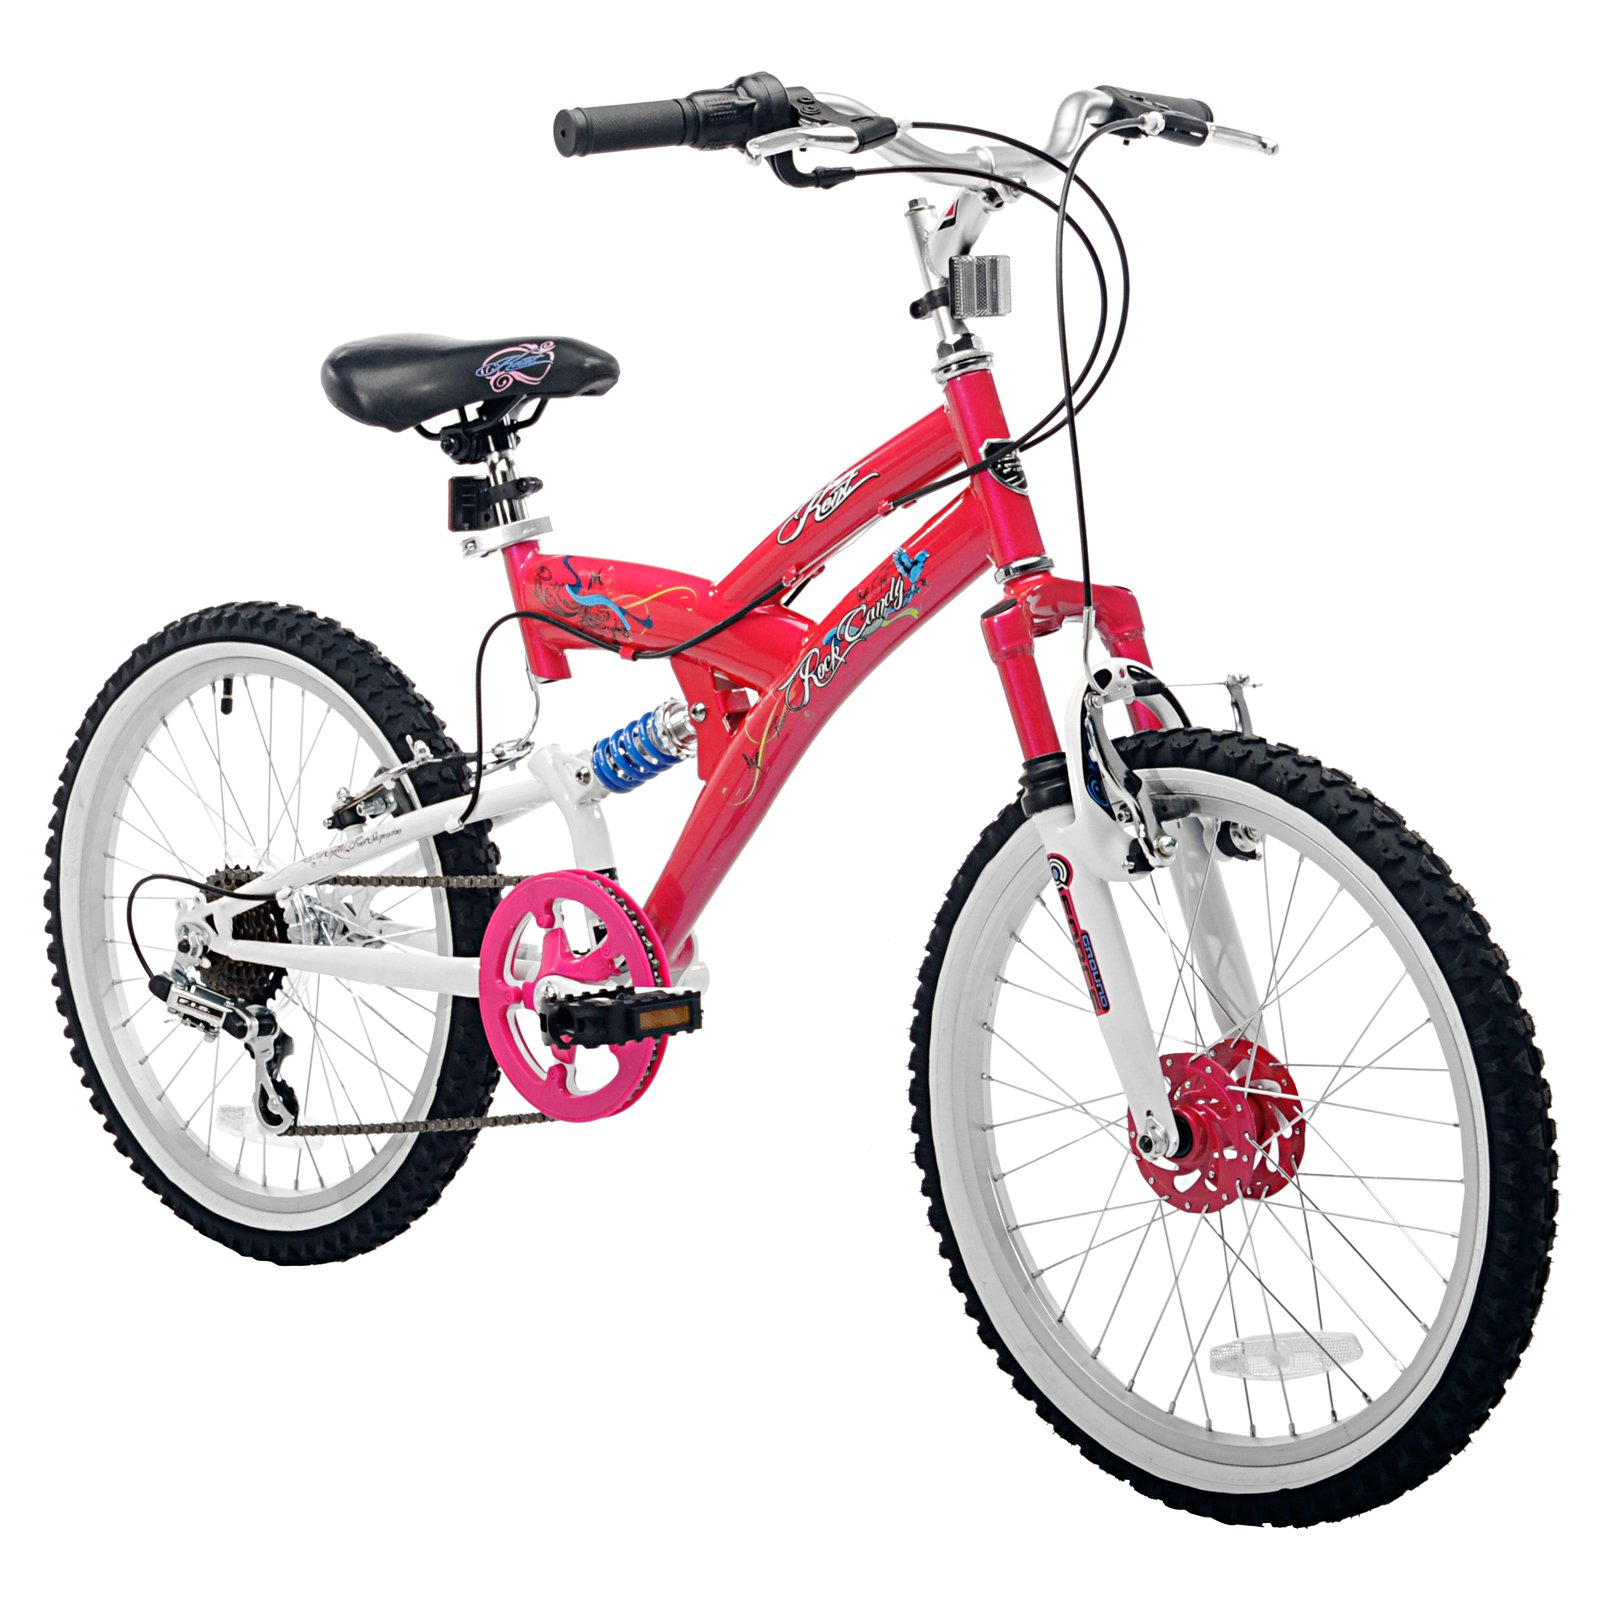 Kent 20 in. Rock Candy Bike by Kent Bicycles